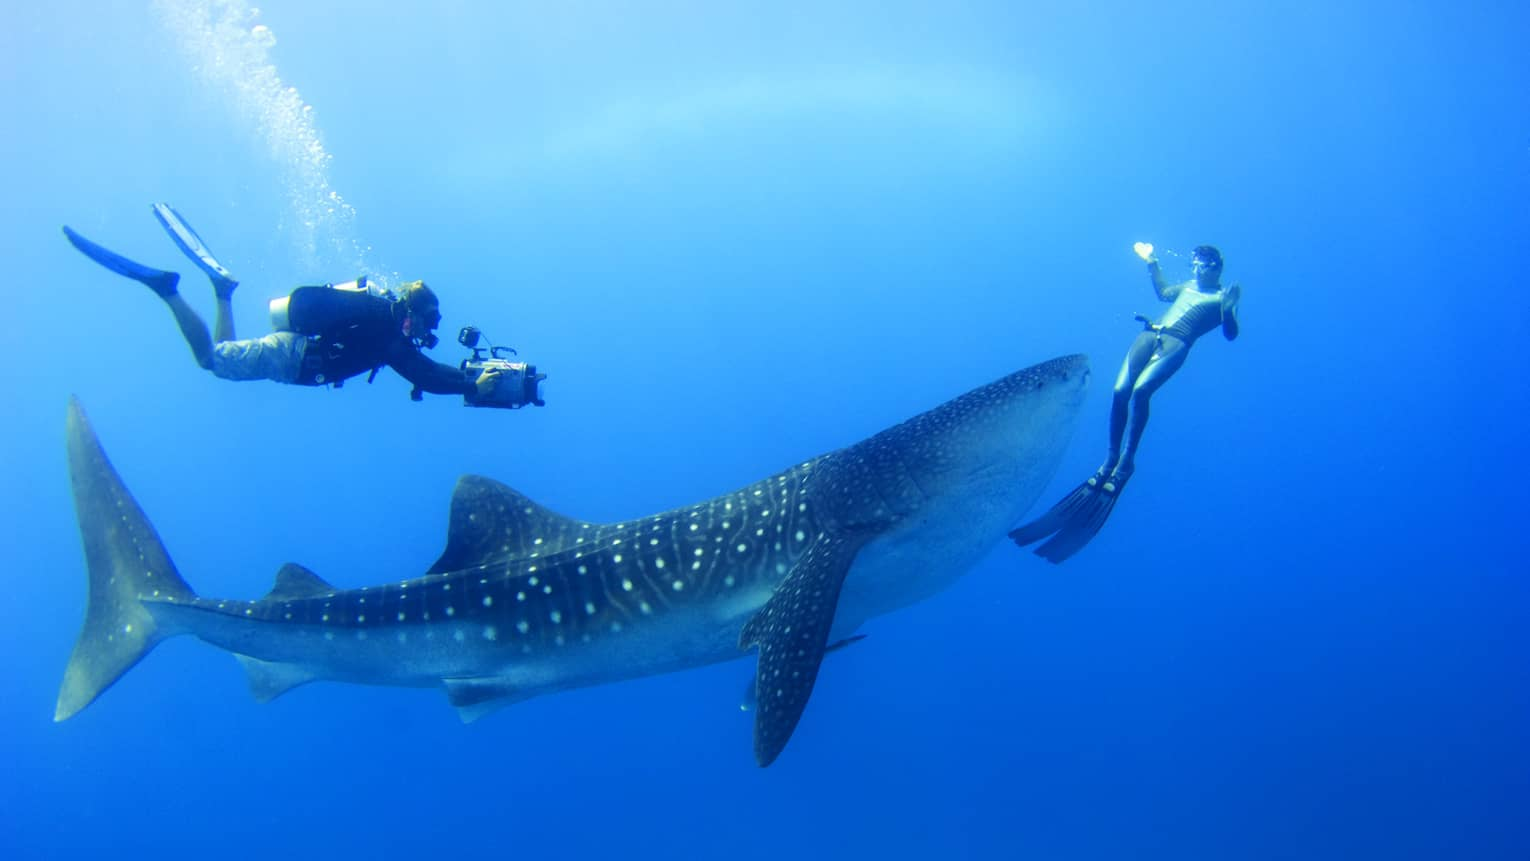 Two scuba divers swim around, film spotted whale shark underwater